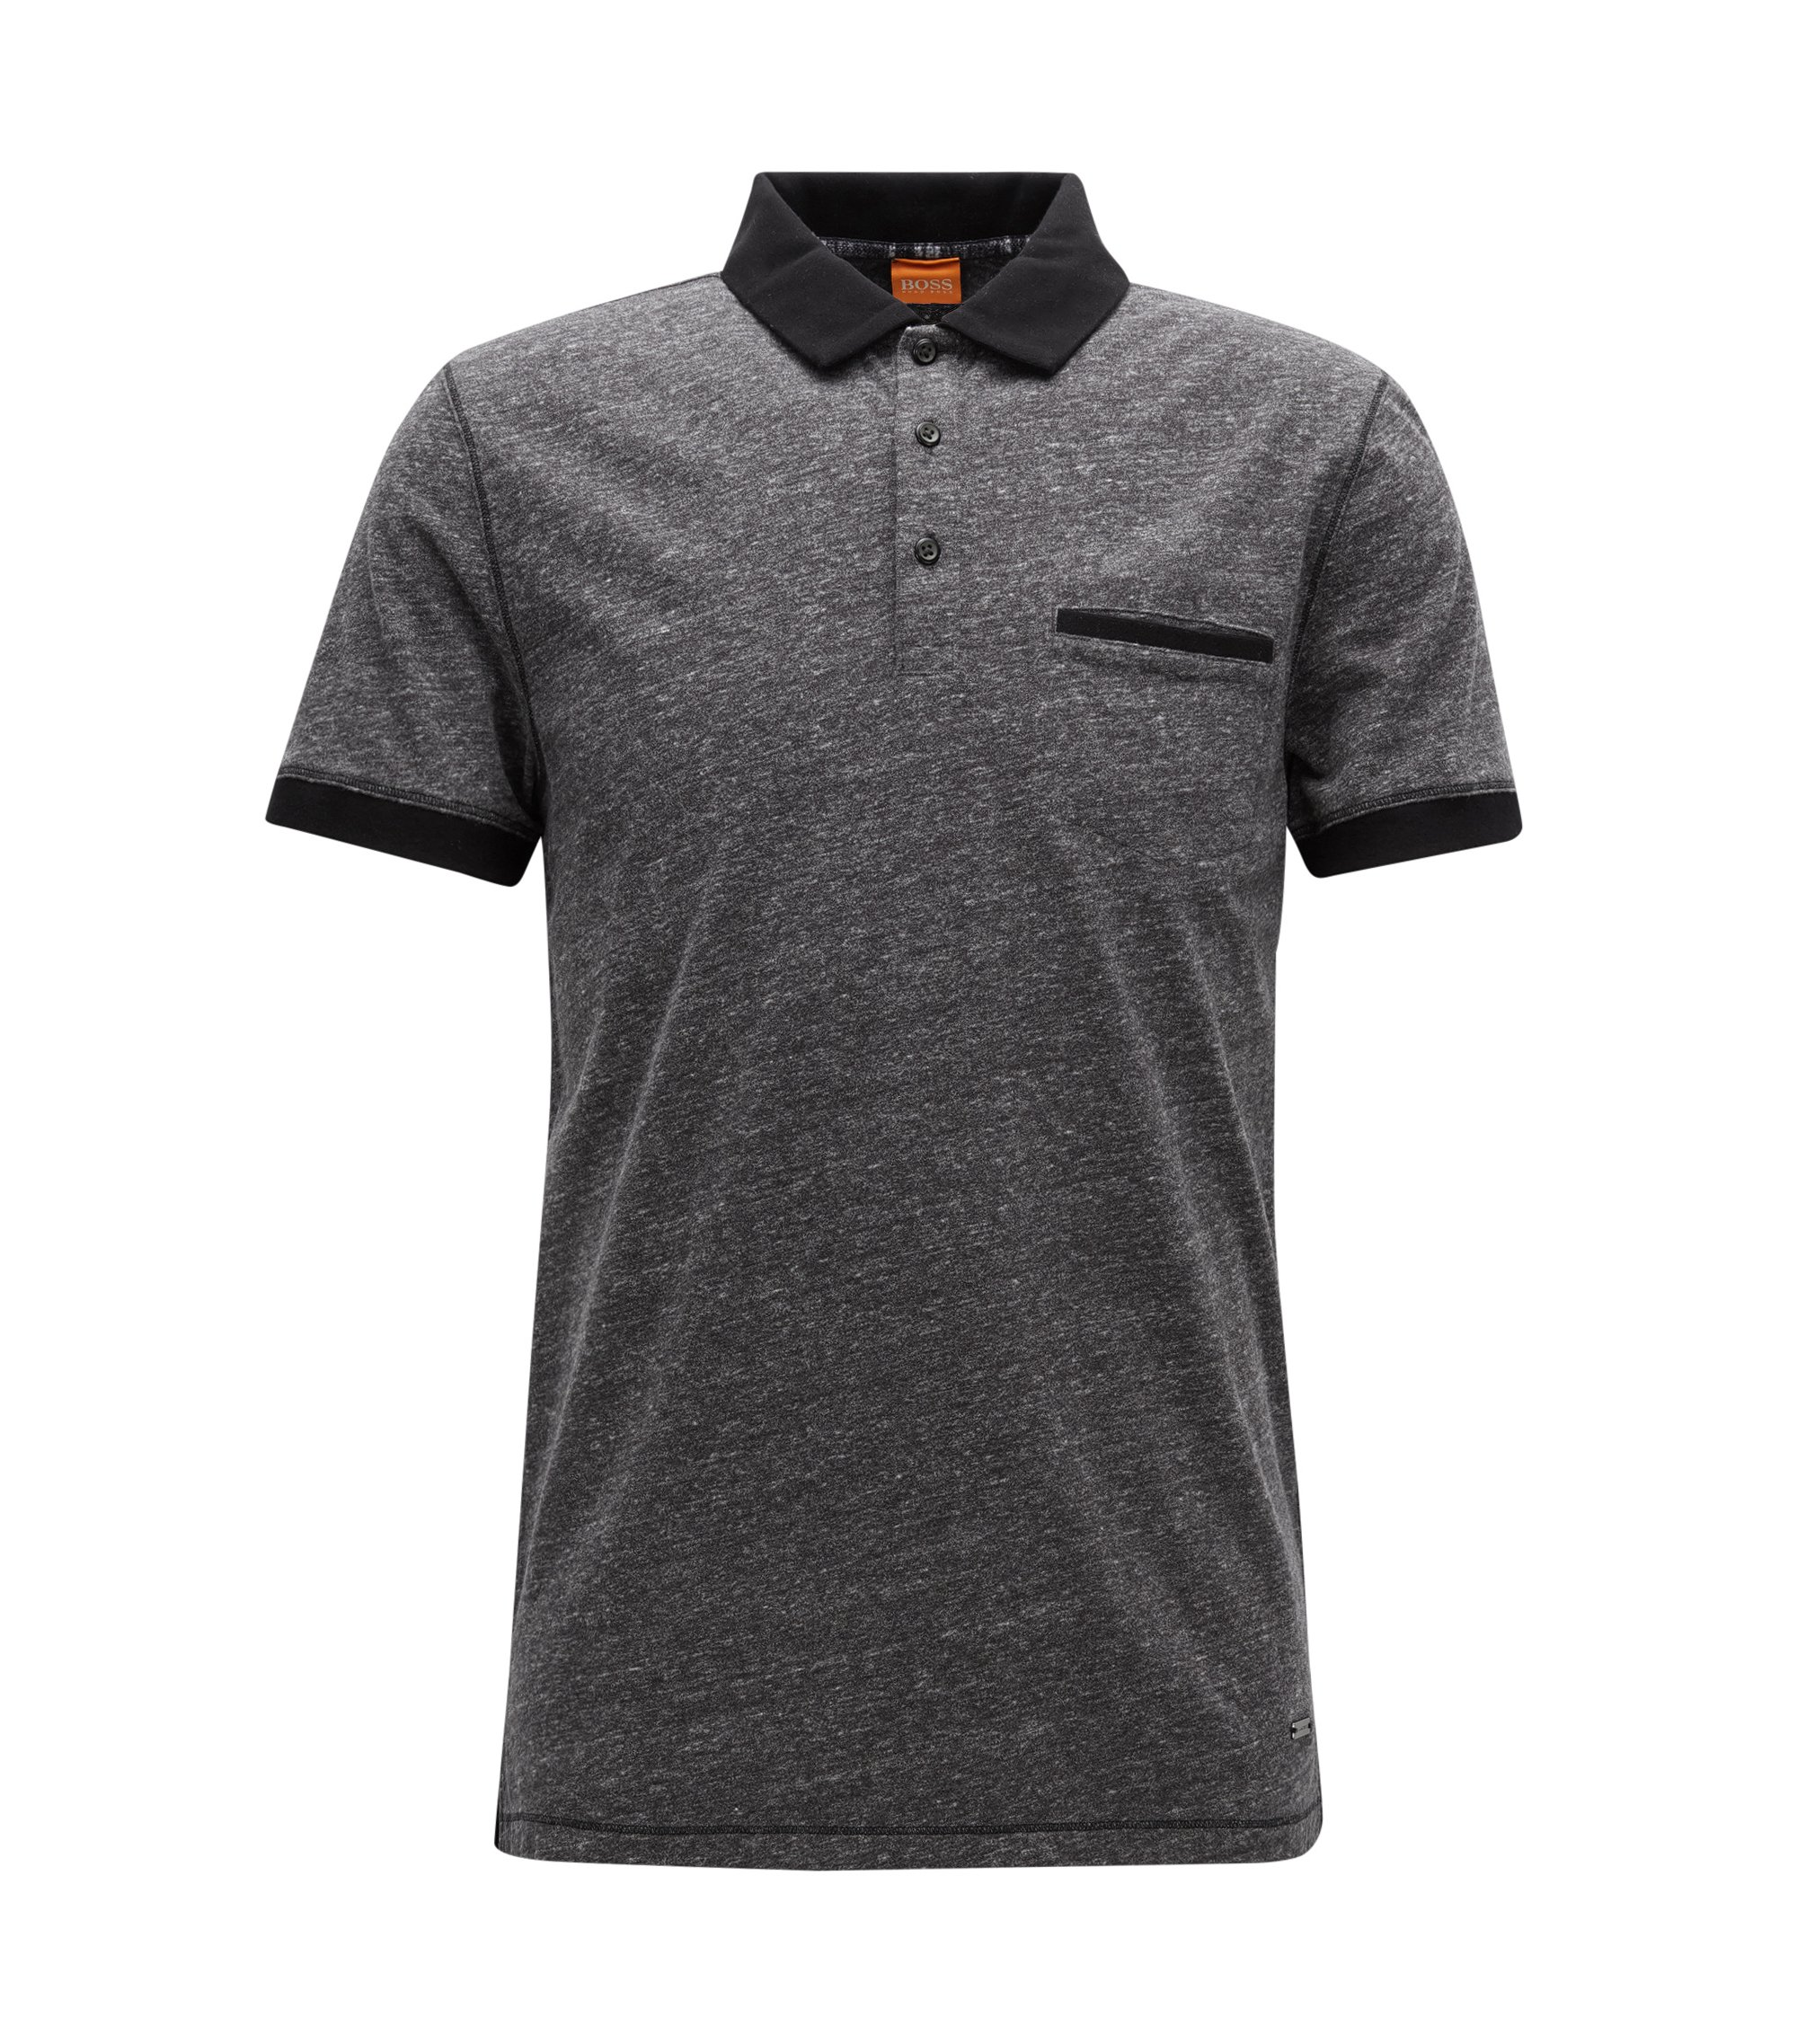 Regular-fit polo shirt in heathered jersey, Black